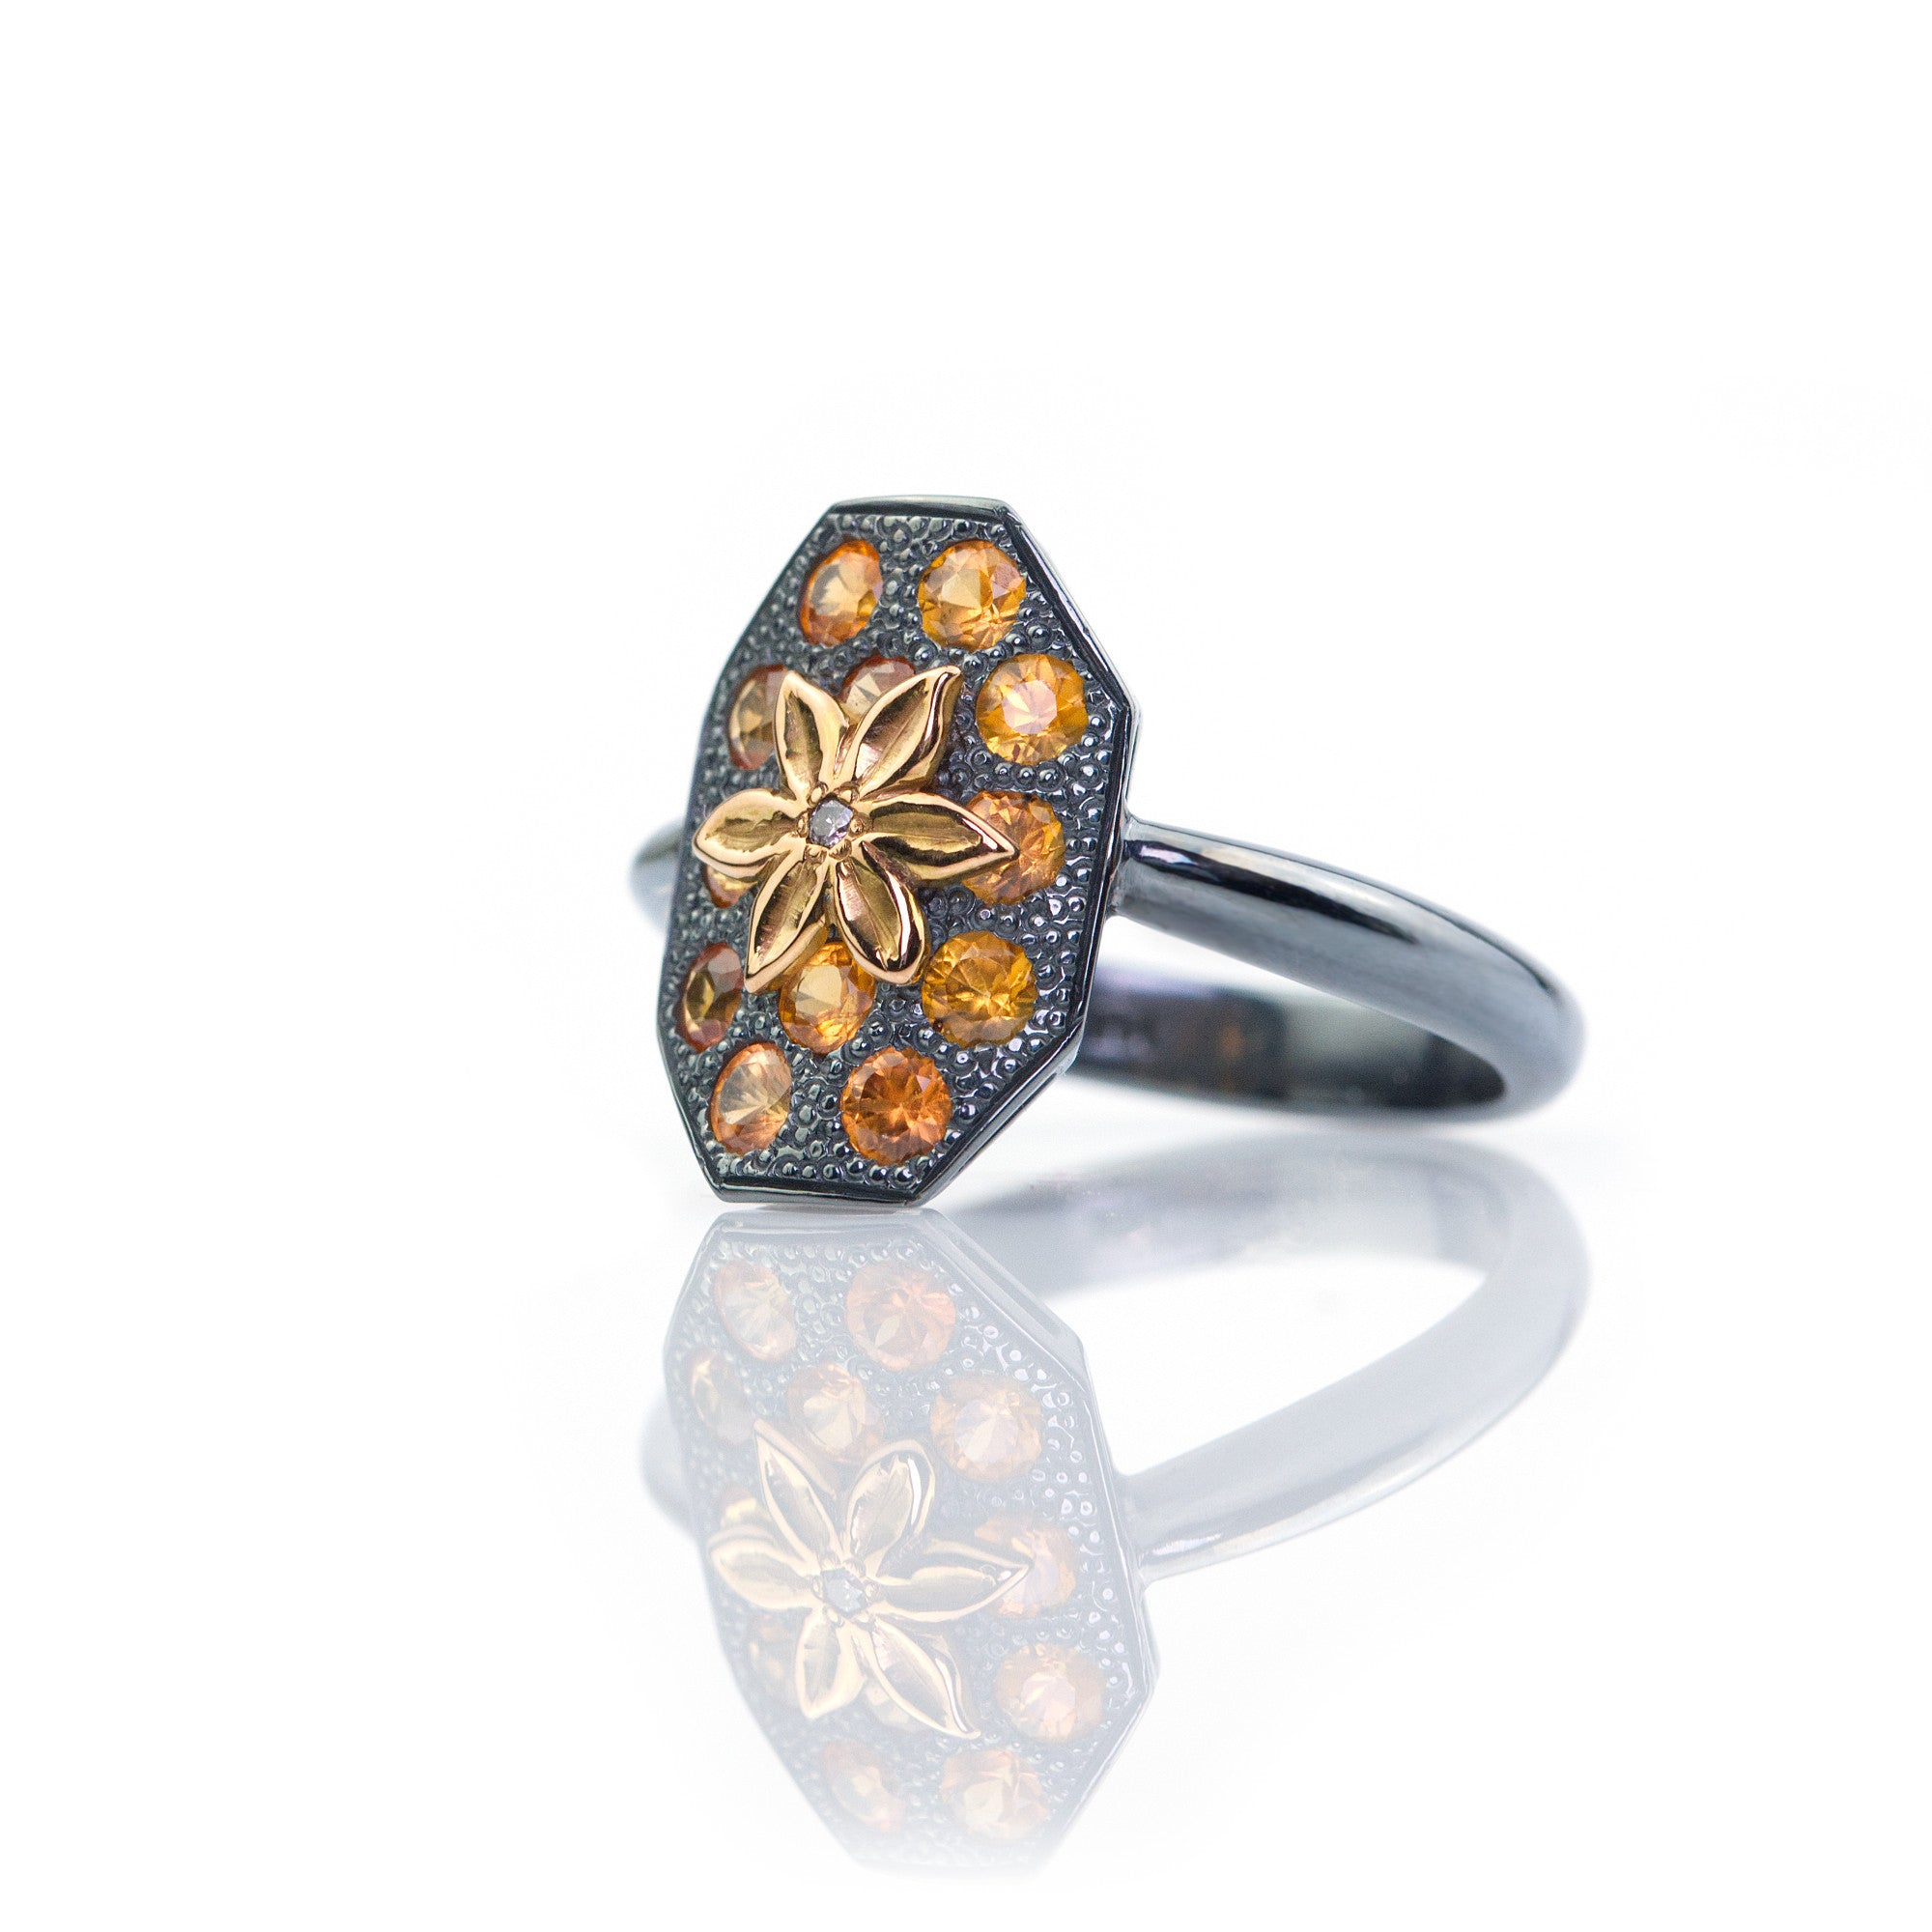 Shield ring with 14k gold handcarved flower by Ewa Z. Sleziona  Jewellery